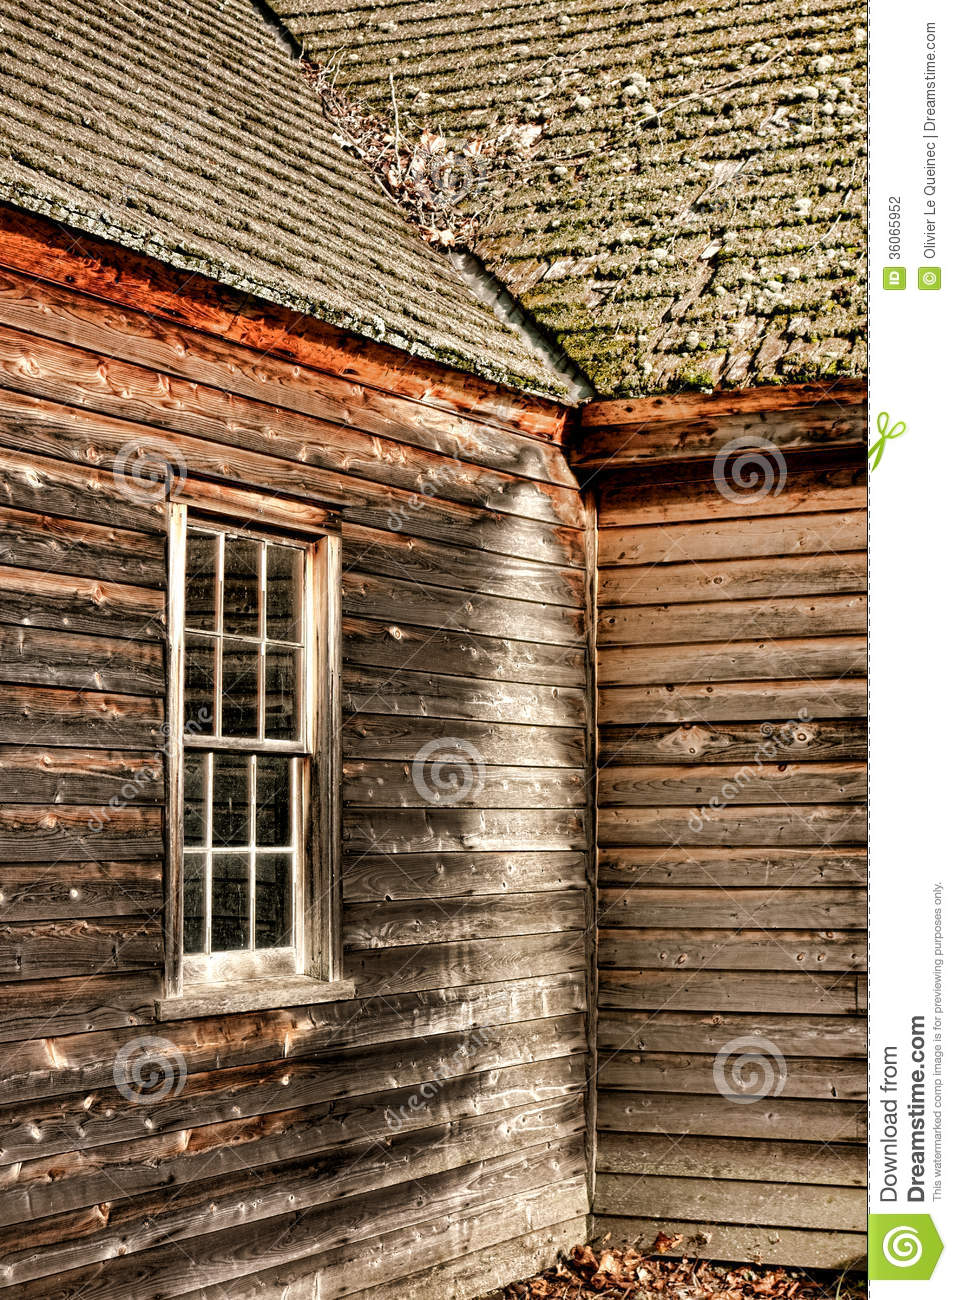 Antique Farmhouse Old Window And Clapboard Siding Stock